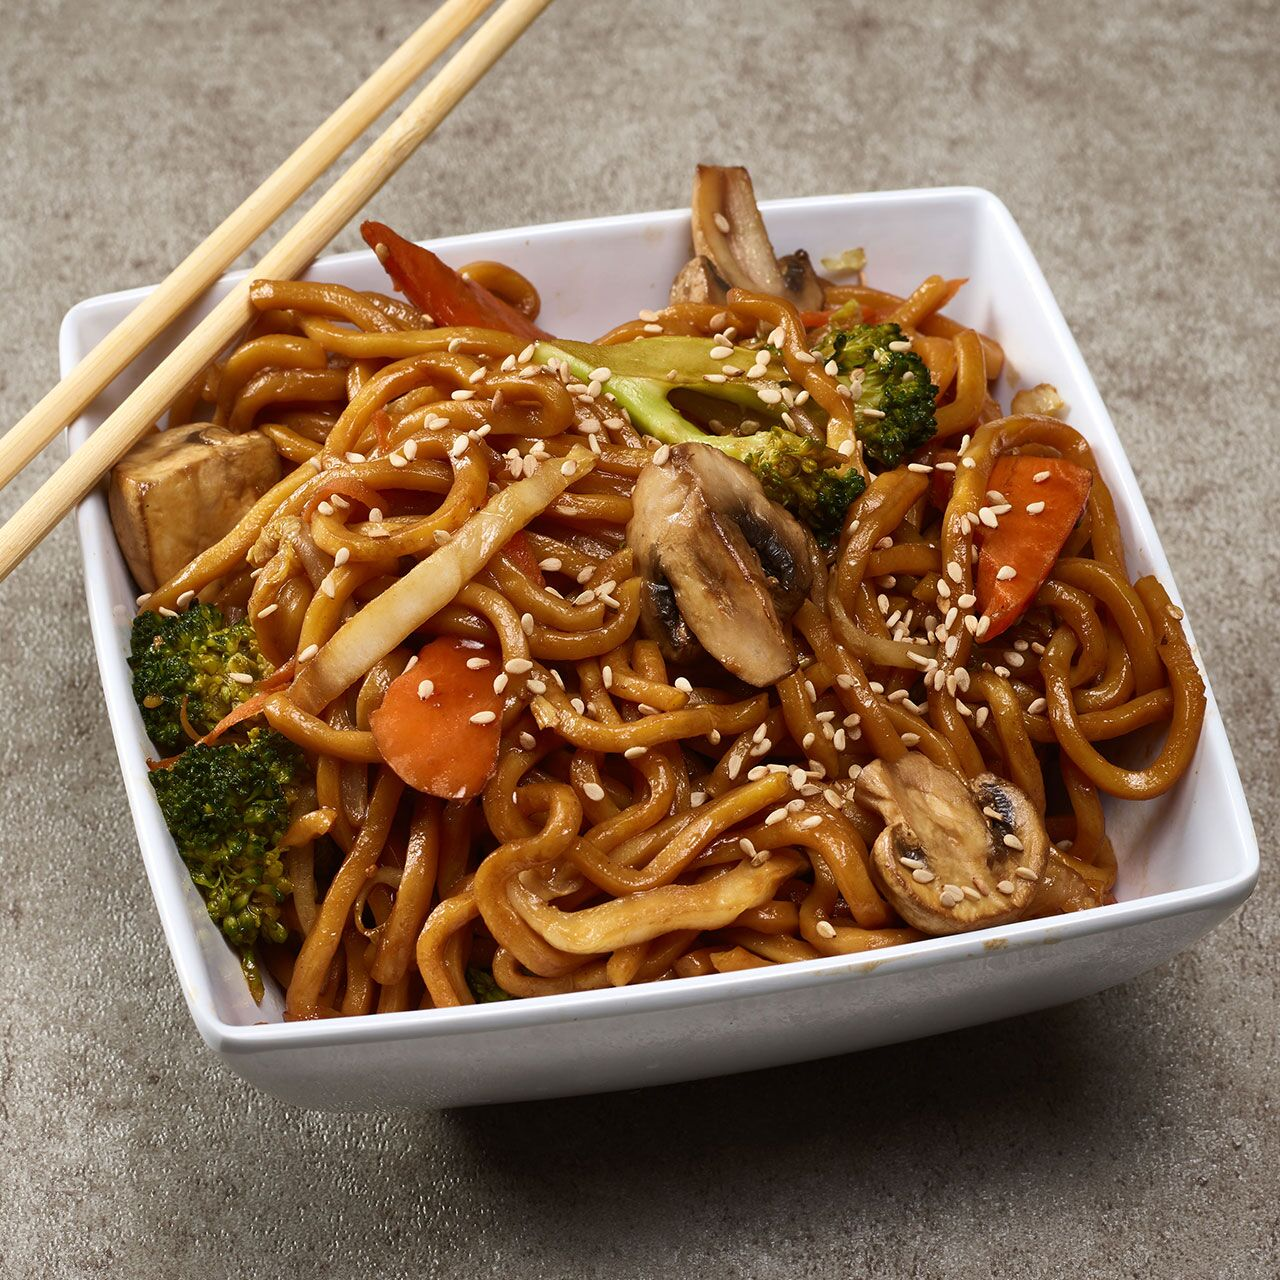 4.	Vegetable Lo Mein from Wok & Roll: Served with soft egg noodles{ } (Image: Courtesy Grubhub)